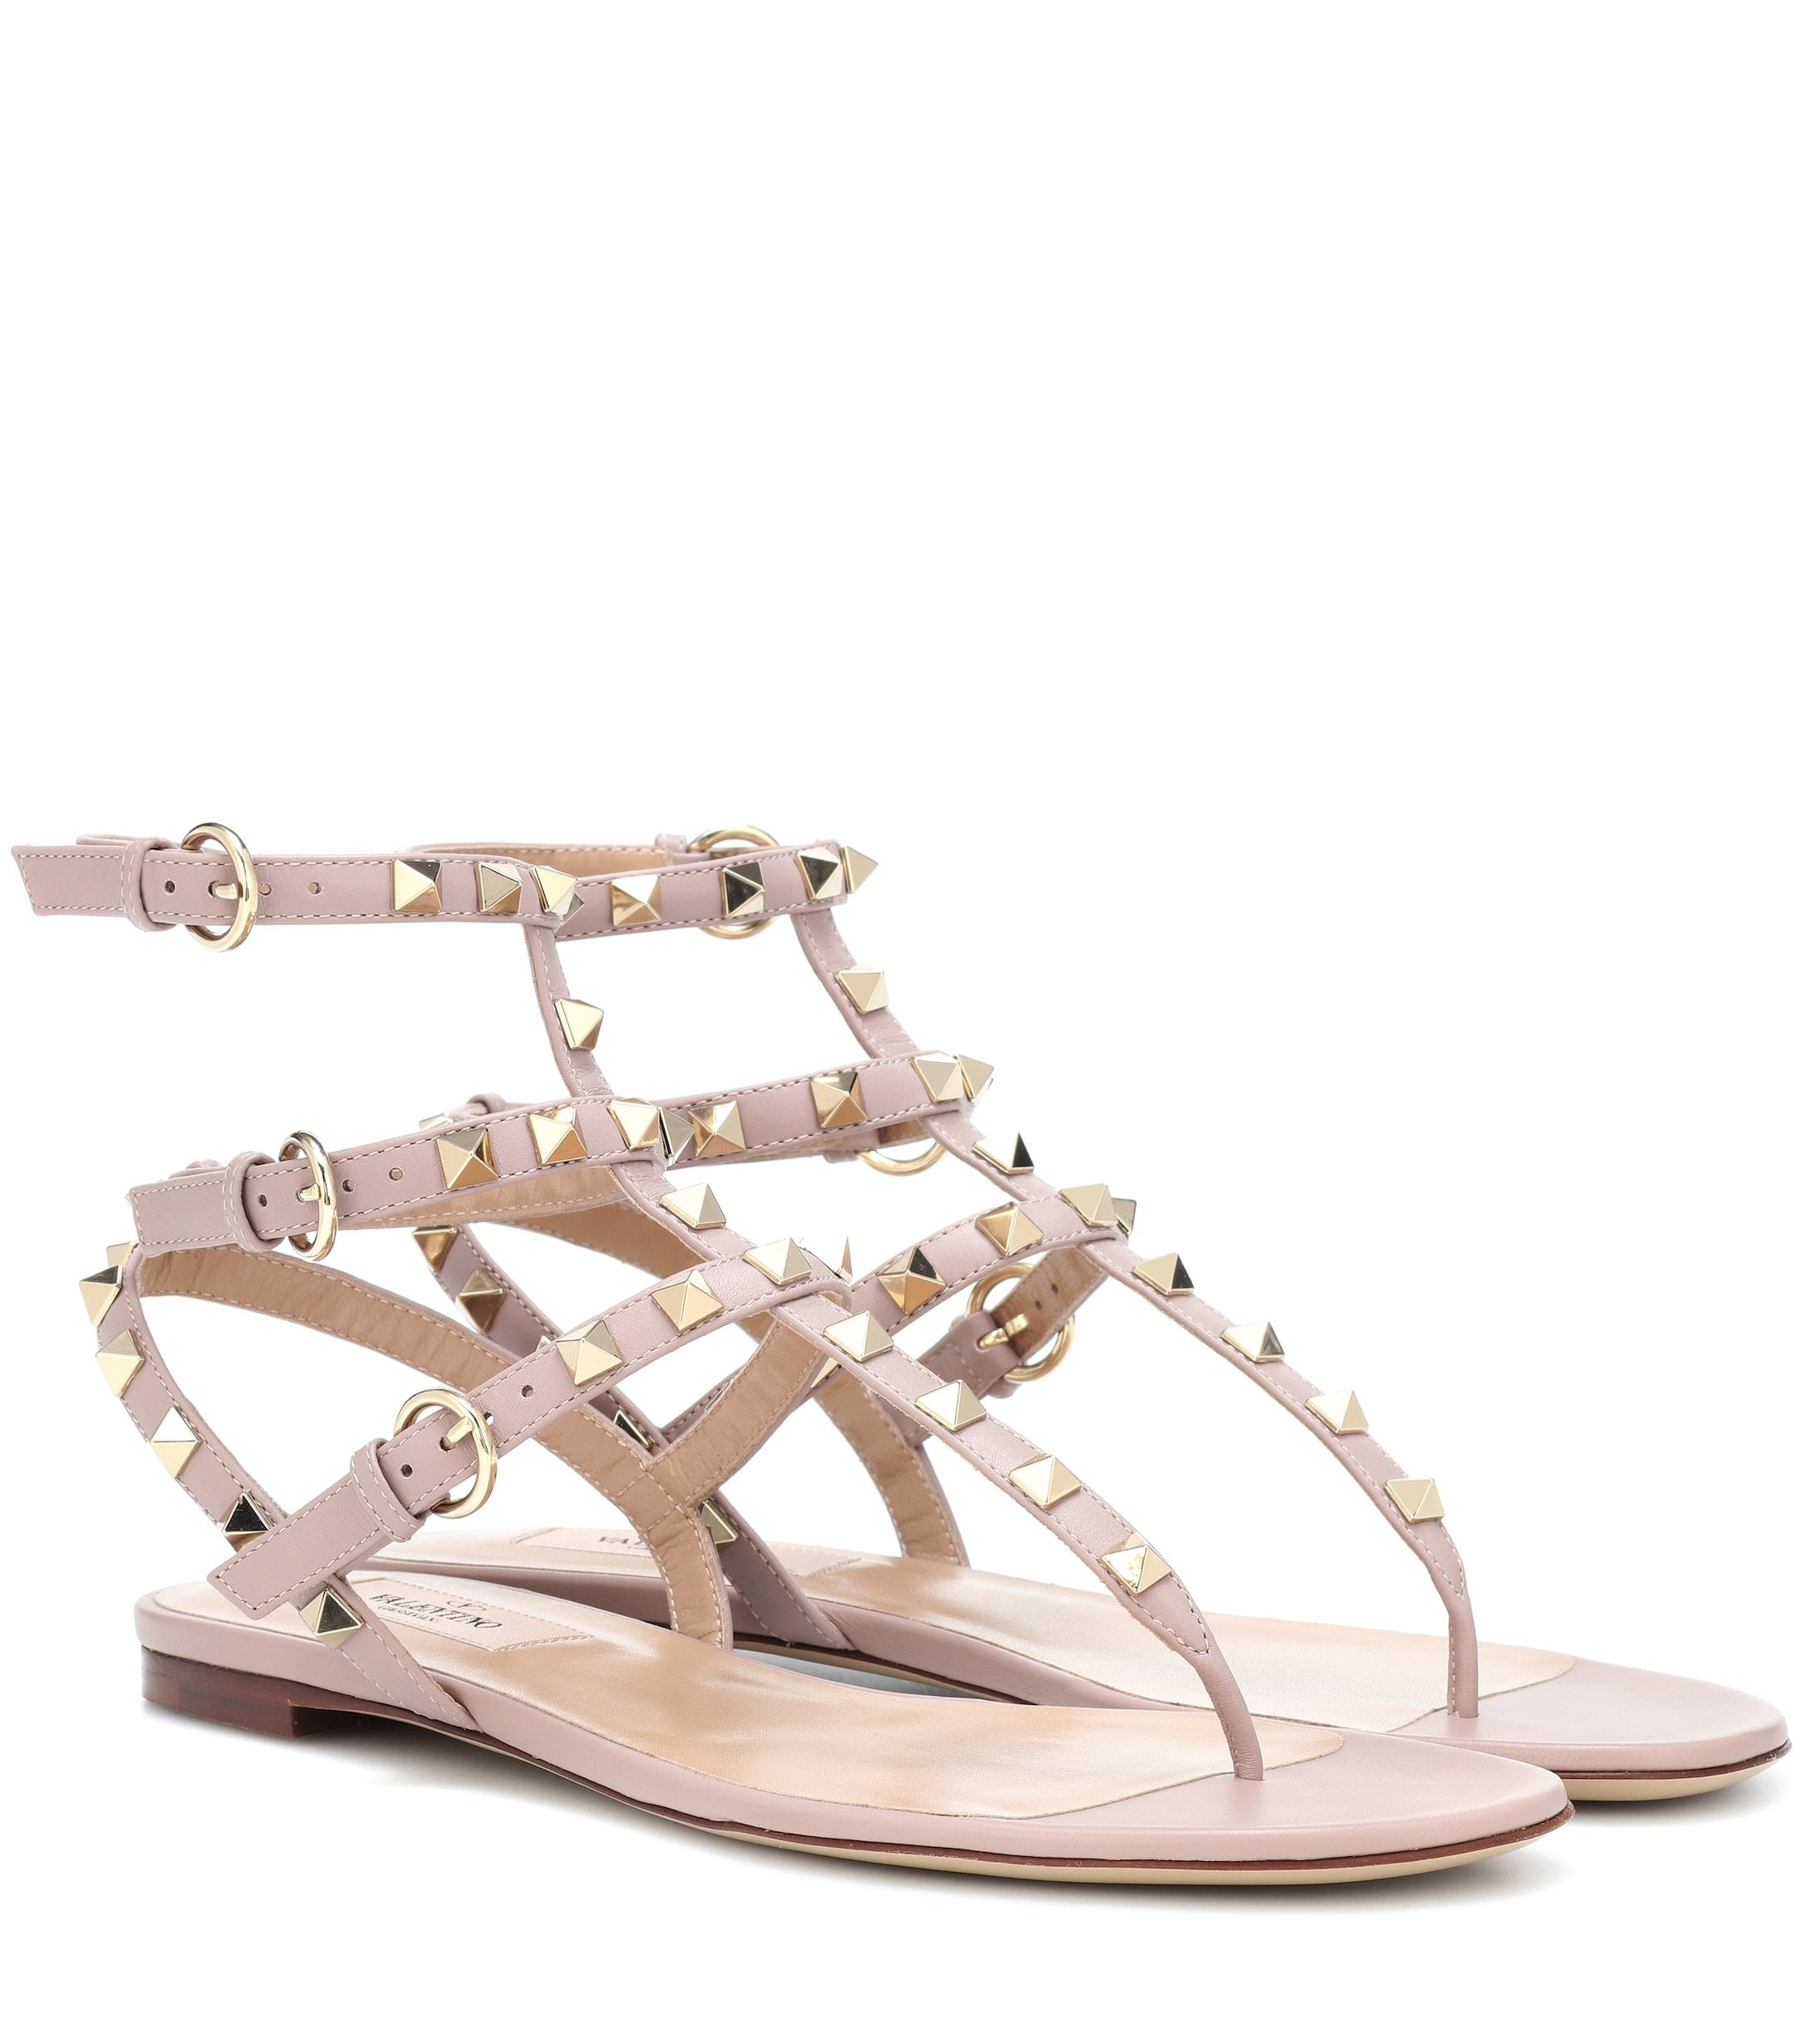 6f441a557 Valentino. Women's Rockstud Leather Sandals